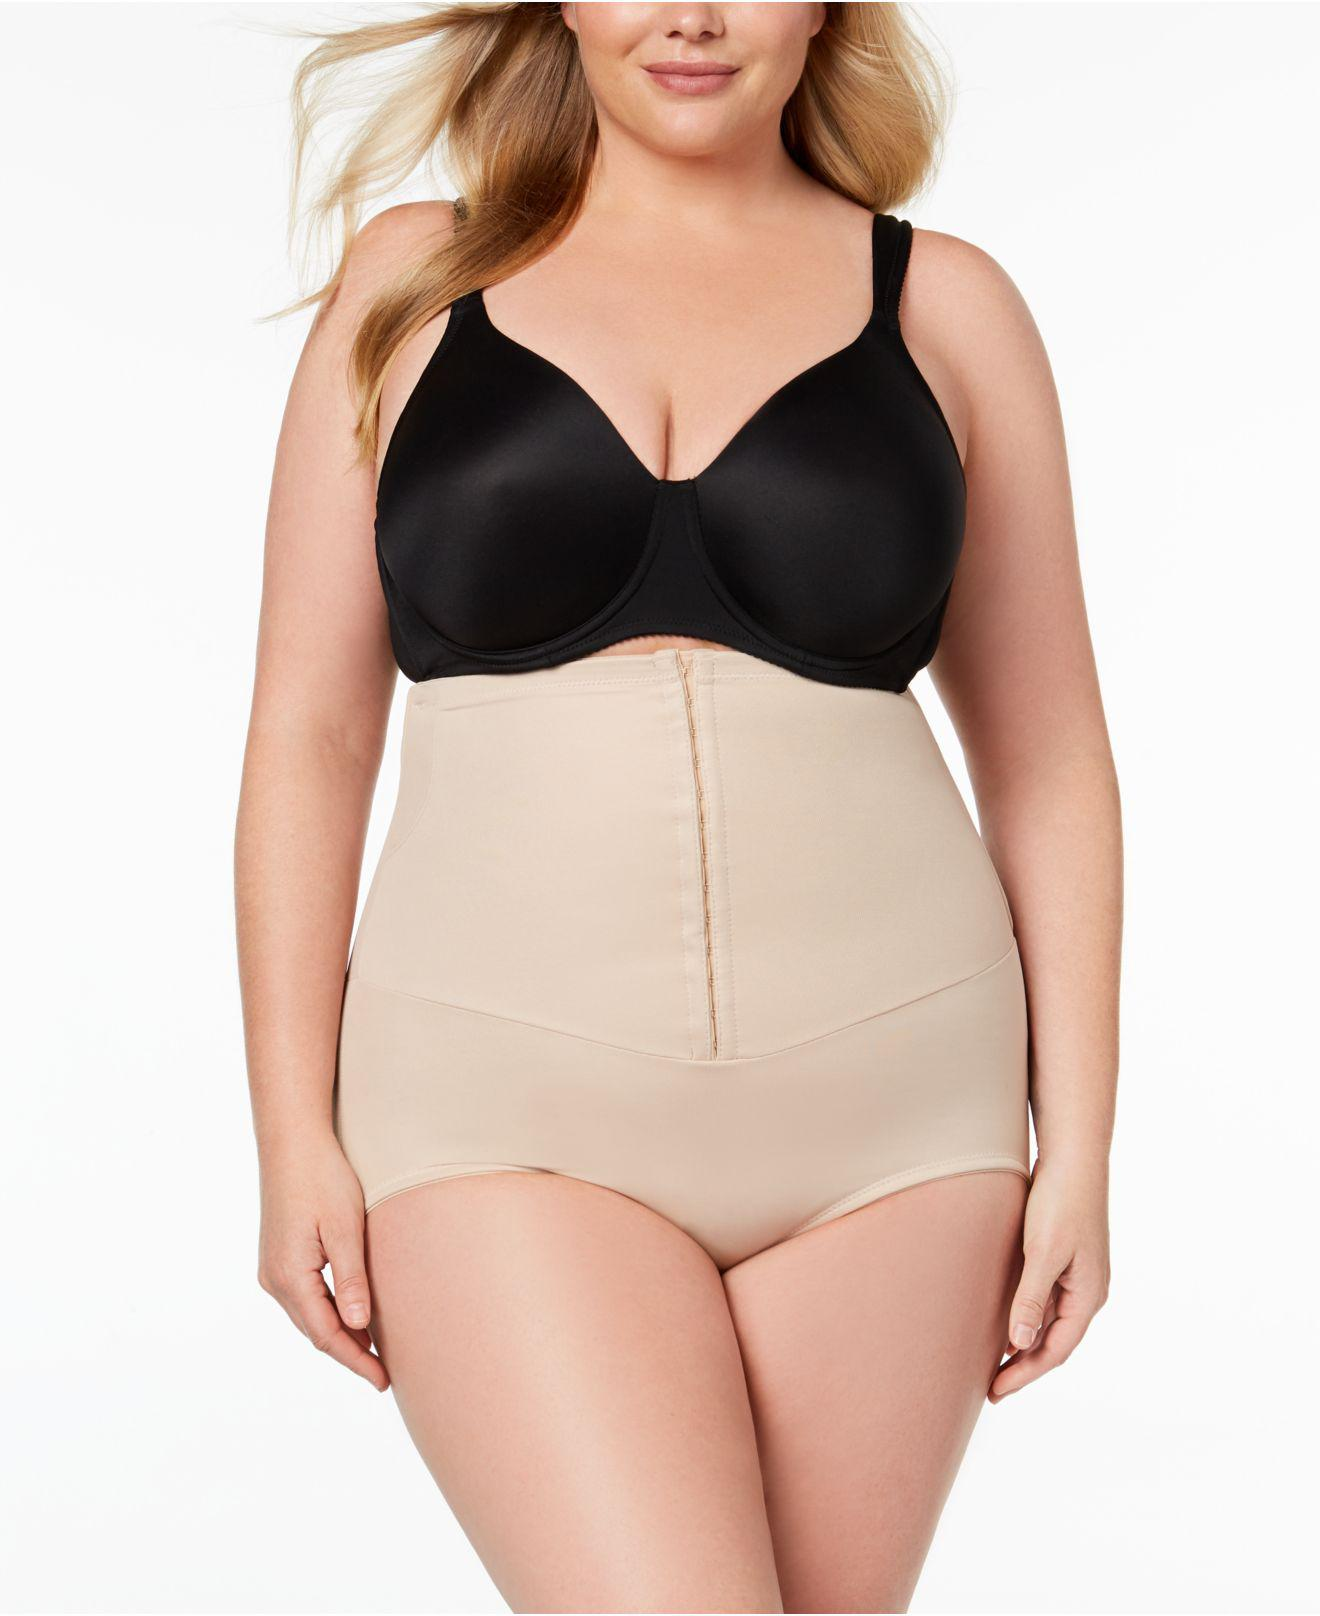 75f84188dc0 Lyst - Miraclesuit Extra Firm Inches Off Waist Cinching High-waist ...